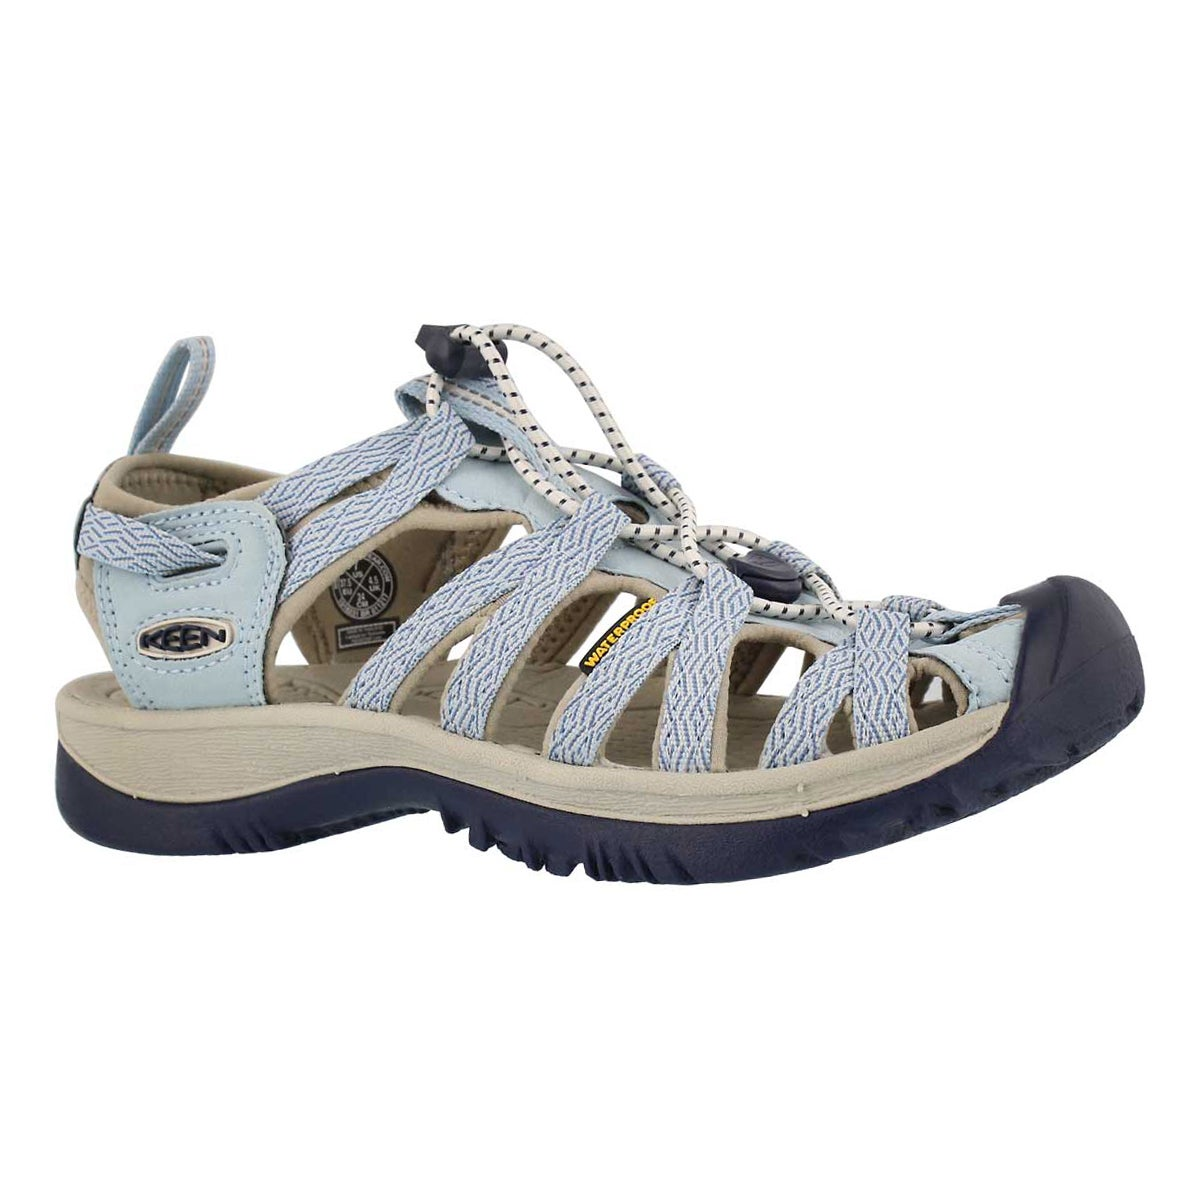 Women's WHISPER sterling blue sport sandals